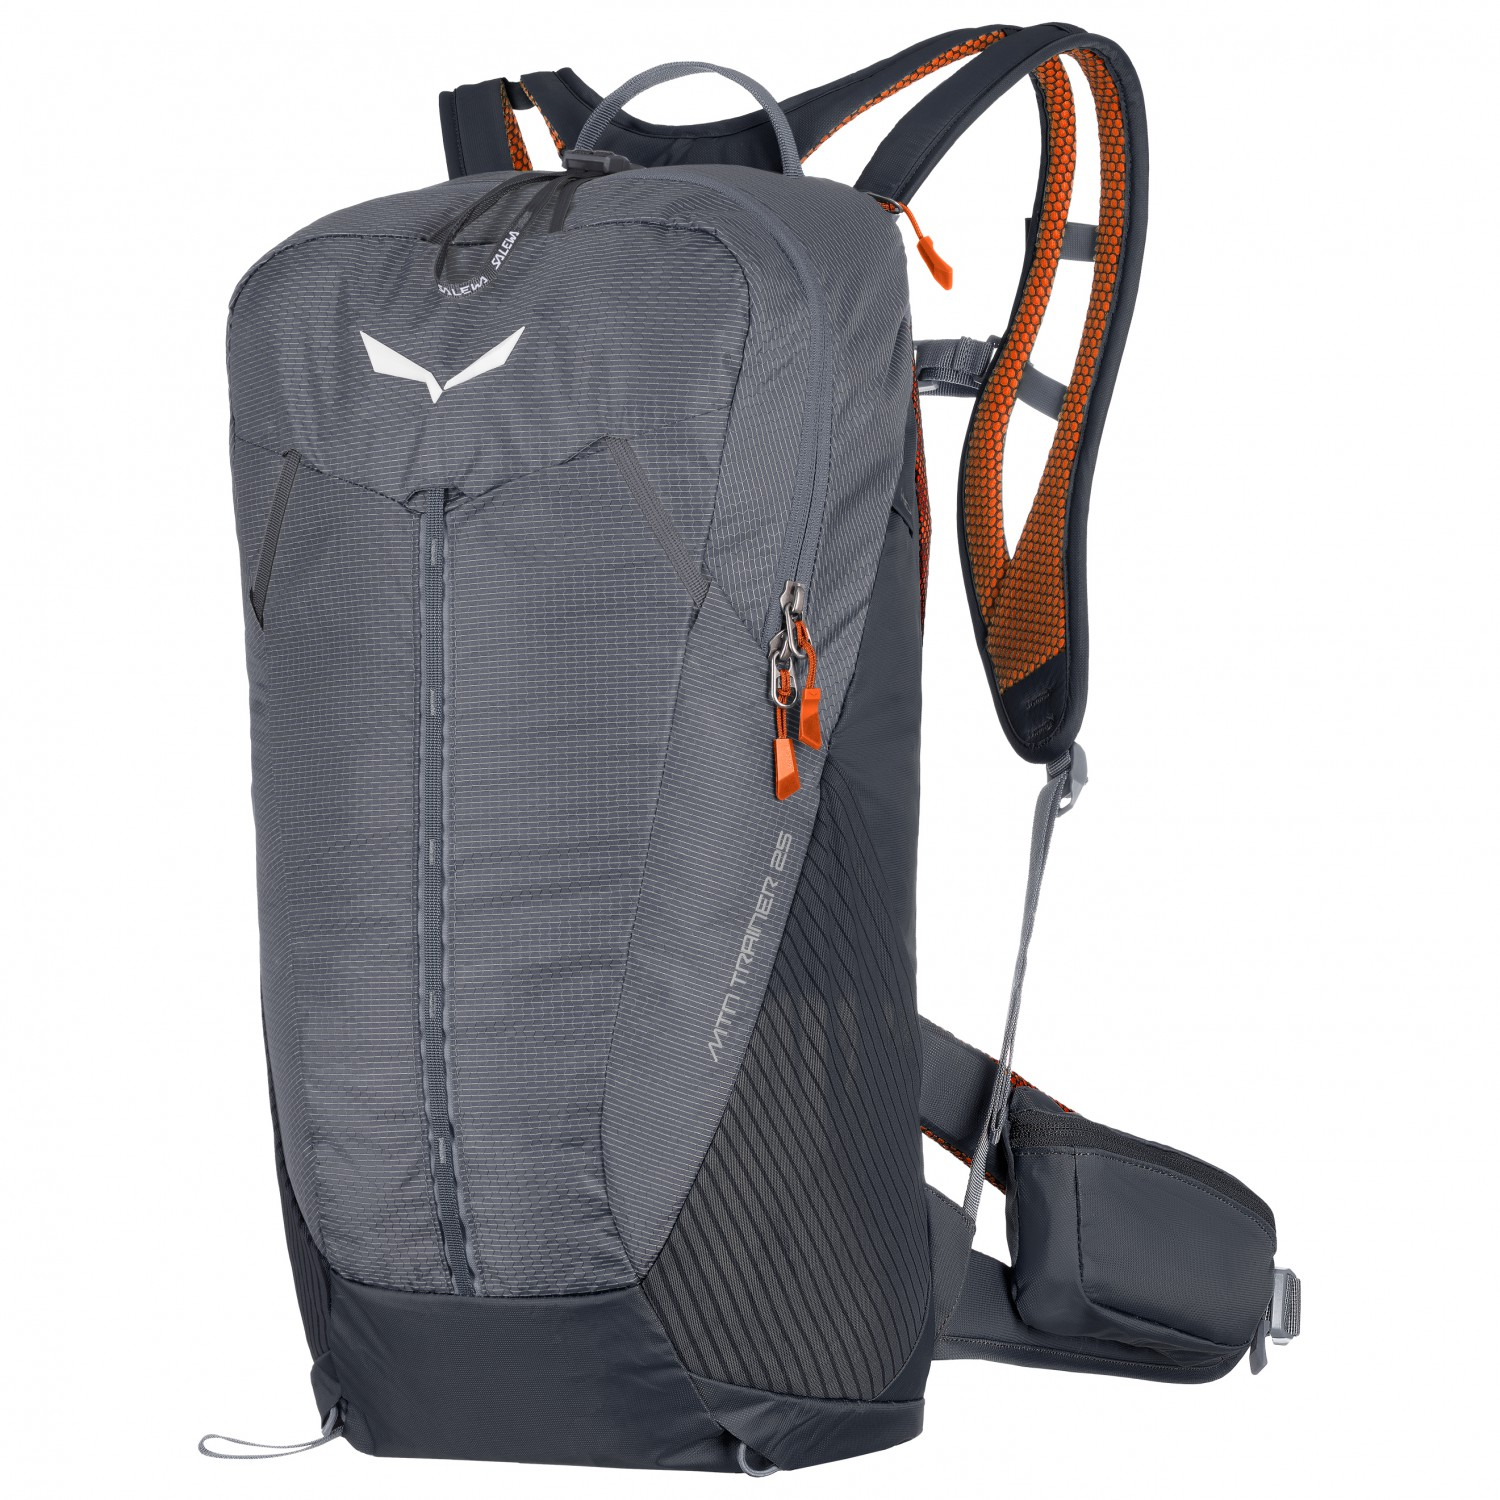 Salewa MTN Trainer 25 - Mountaineering backpack   Free EU Delivery    Bergfreunde.eu 2a6b3aa2cb